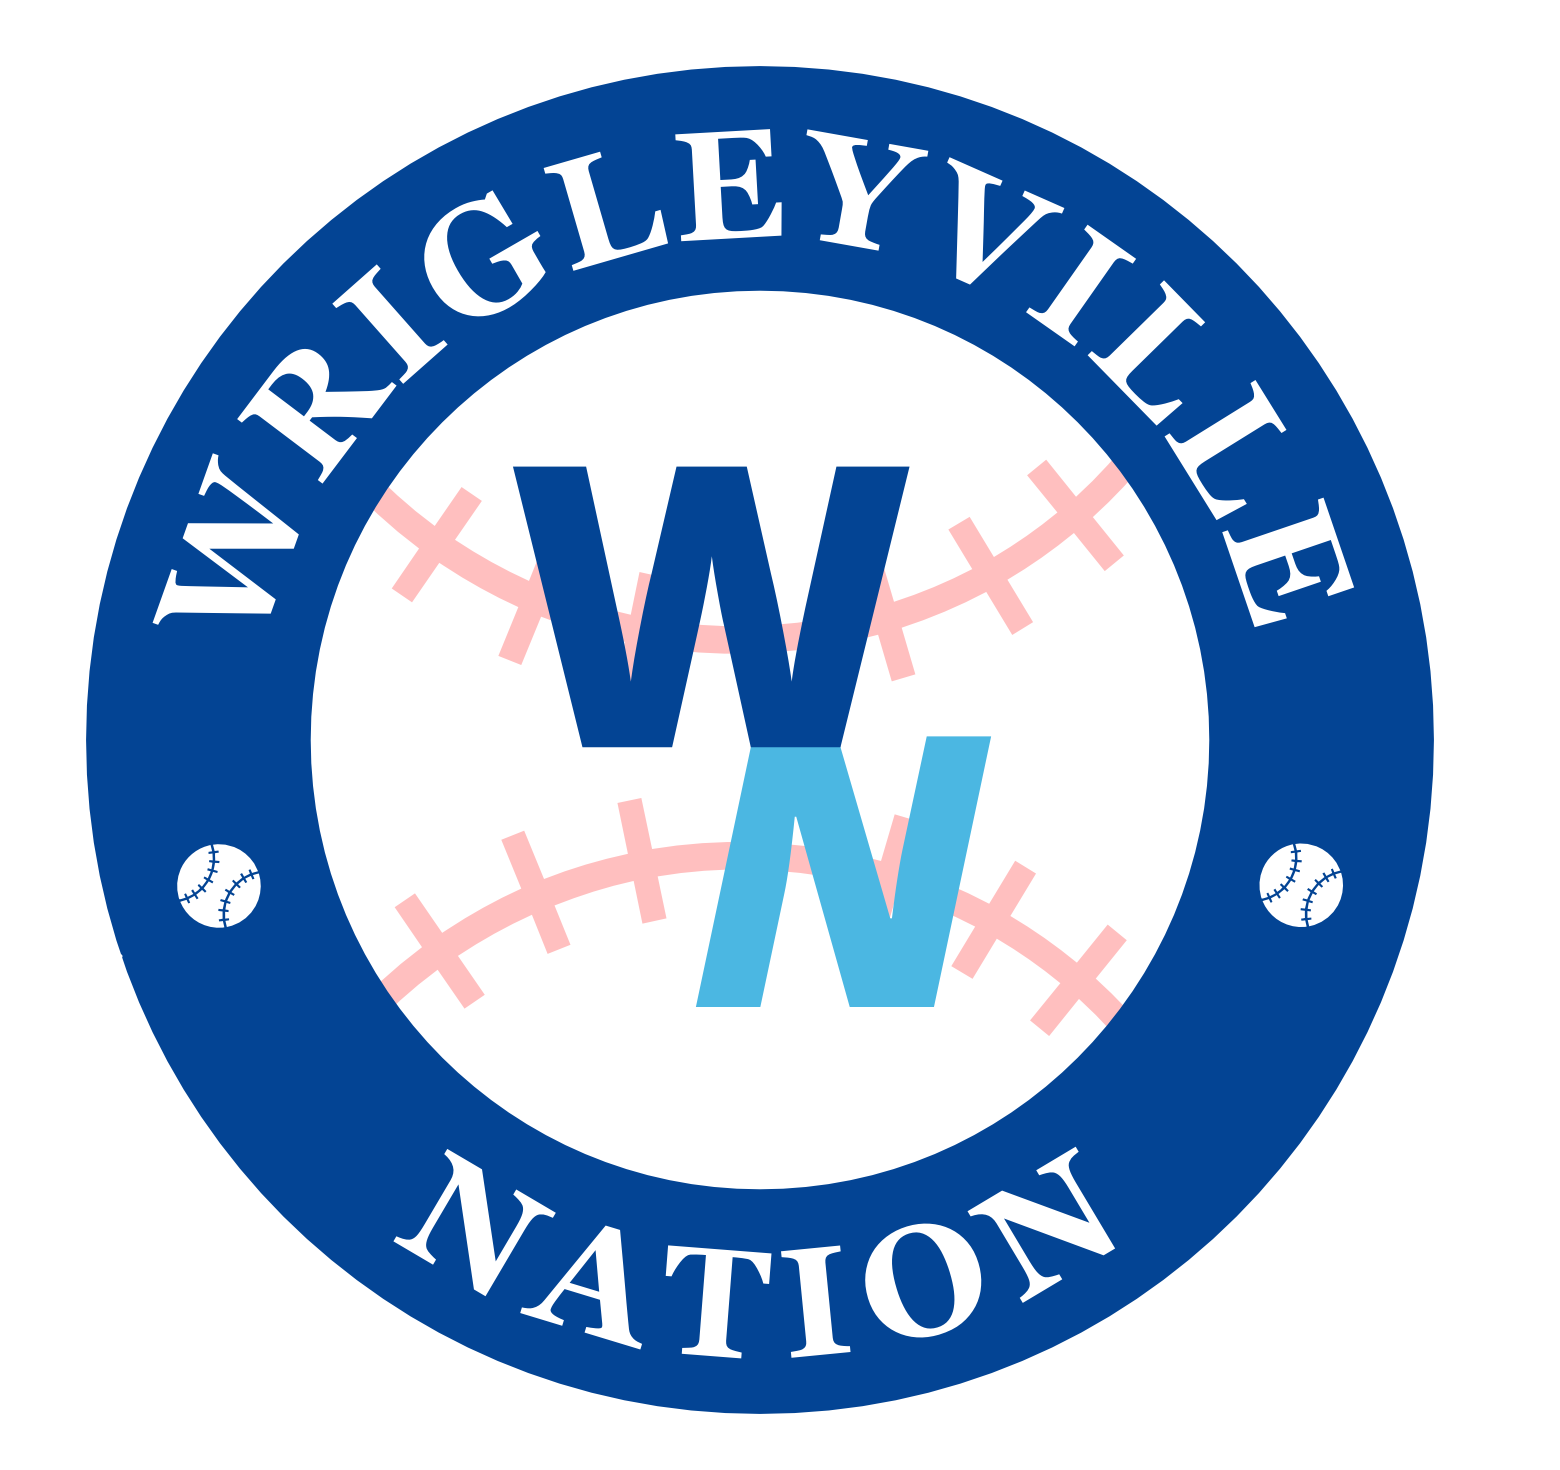 Wrigleyville Nation Ep 204 - Guest: Corey Freedman, Cubs Success and Struggles, Trade Deadline Preview, & More show art